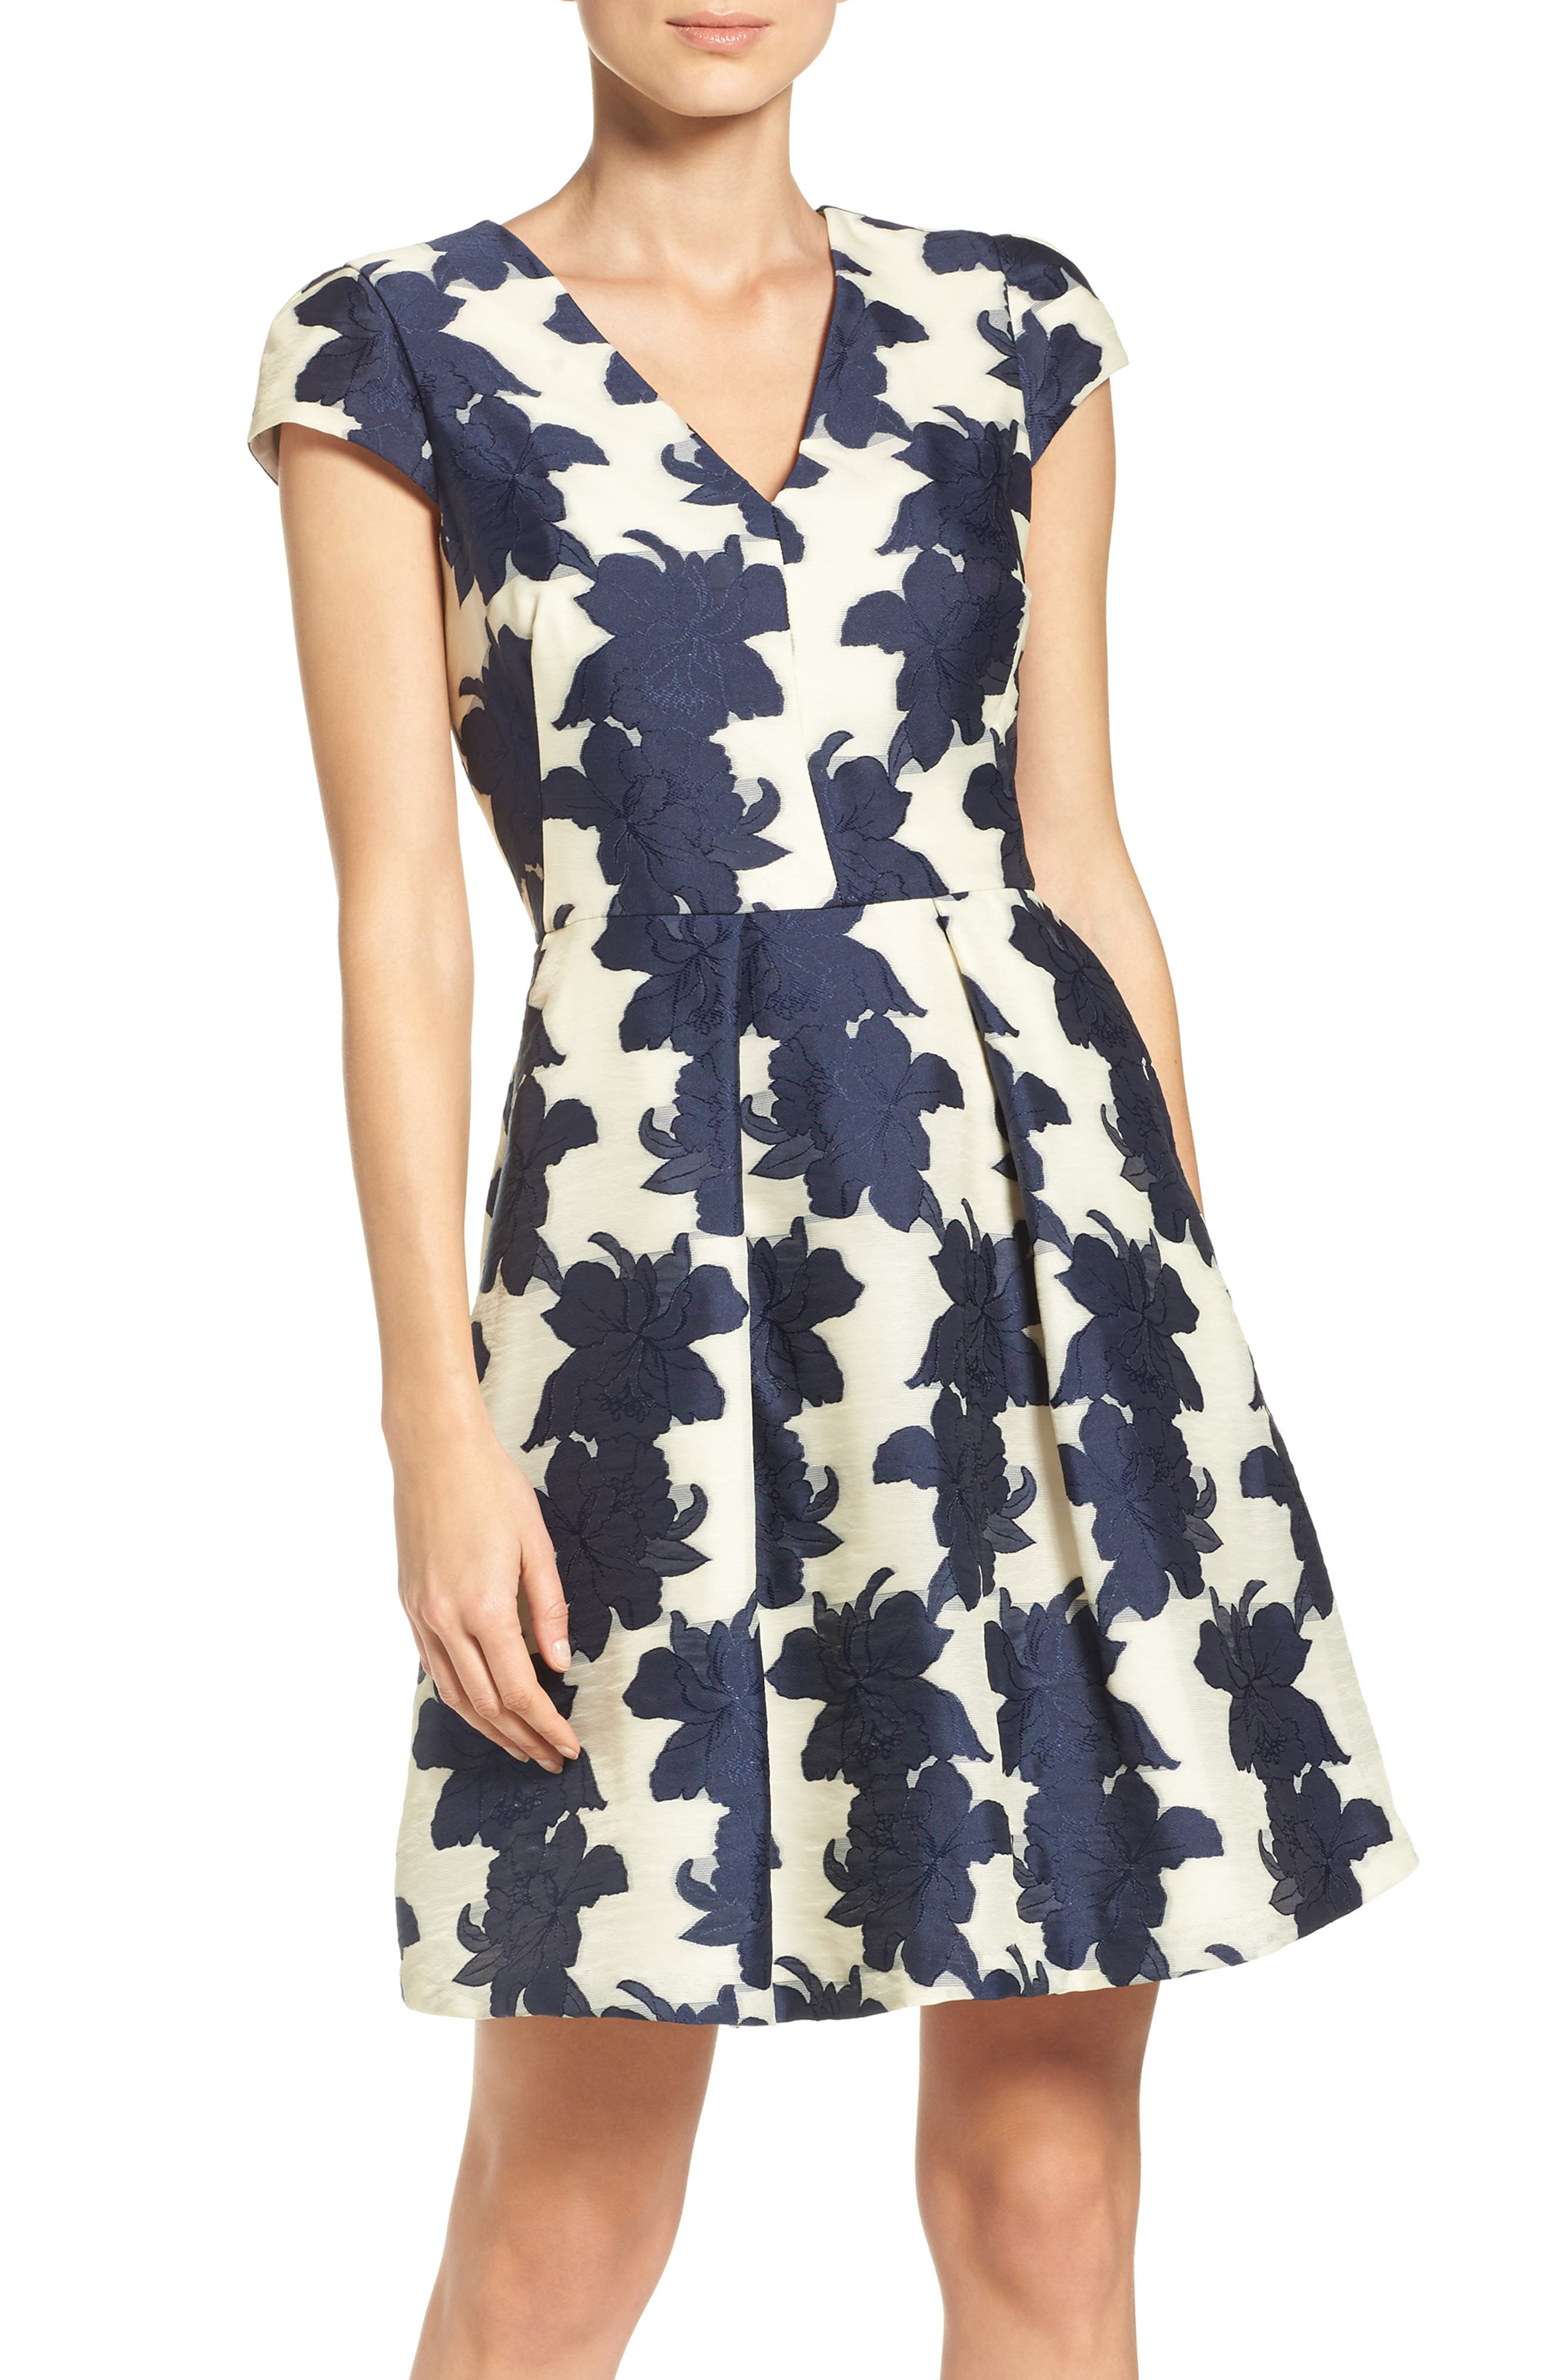 Alternate Image 1 Selected - Vince Camuto Floral Organza Fit & Flare Dress (Regular & Petite)